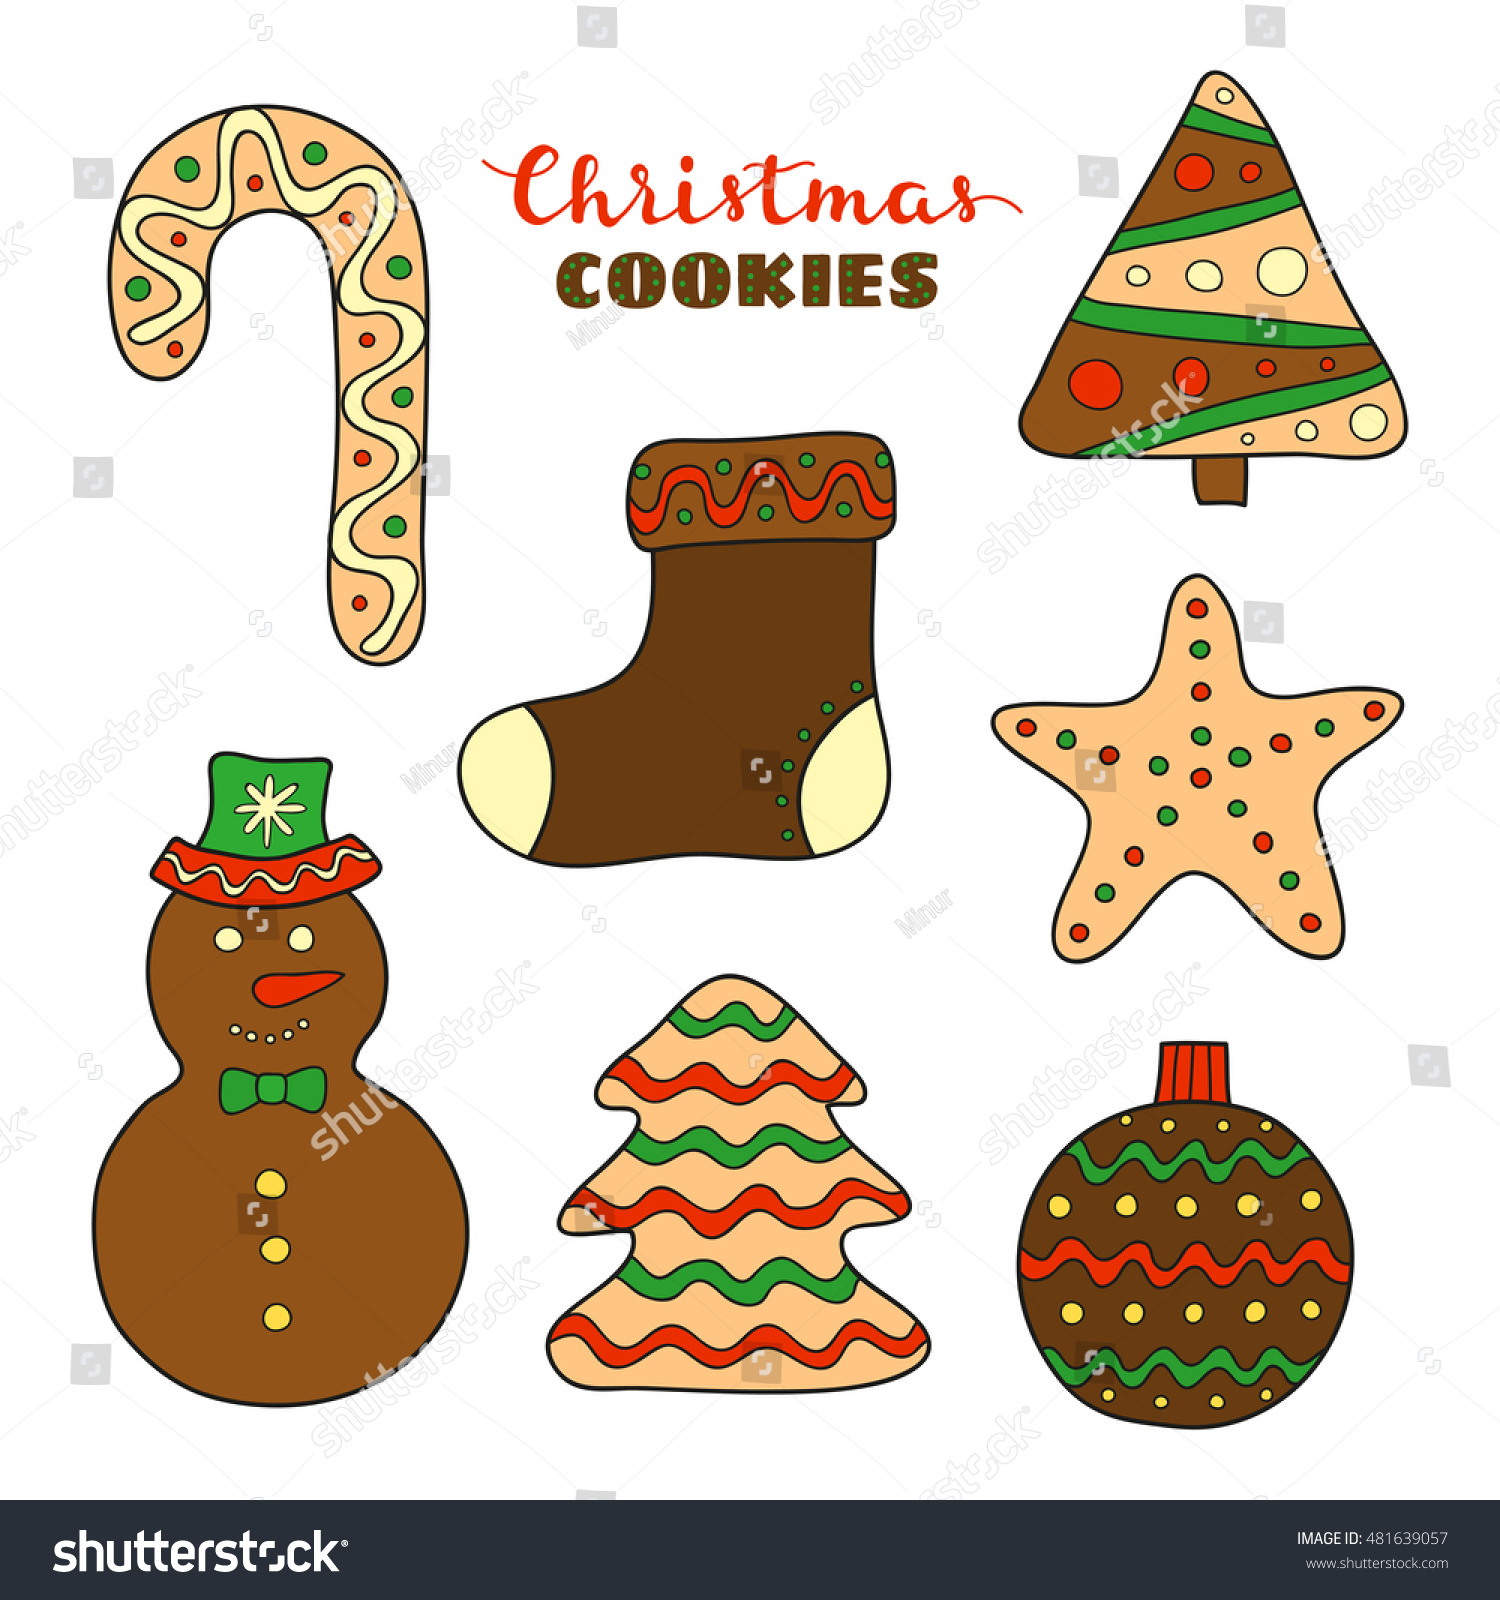 Hand Drawn Christmas Cookies Icing Decor Stock Vector (Royalty Free ...